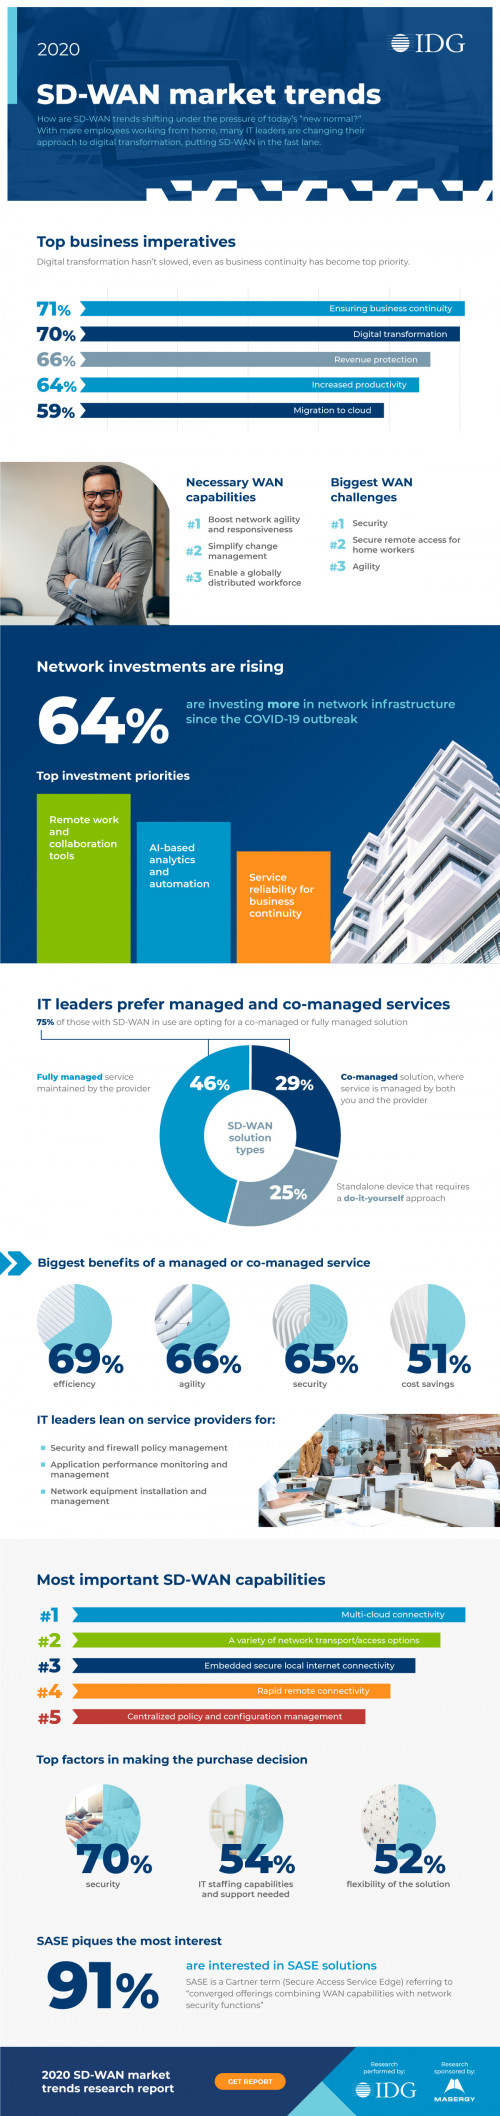 """How are SD-WAN trends shifting under the pressure of today's """"new normal?"""" With more employees working from home, many IT leaders are changing their approach to digital transformation, putting SD-WAN in the fast lane. Check out our infographic """"SD-WAN Market Trends"""" to learn more- https://www.masergy.com/sd-wan"""